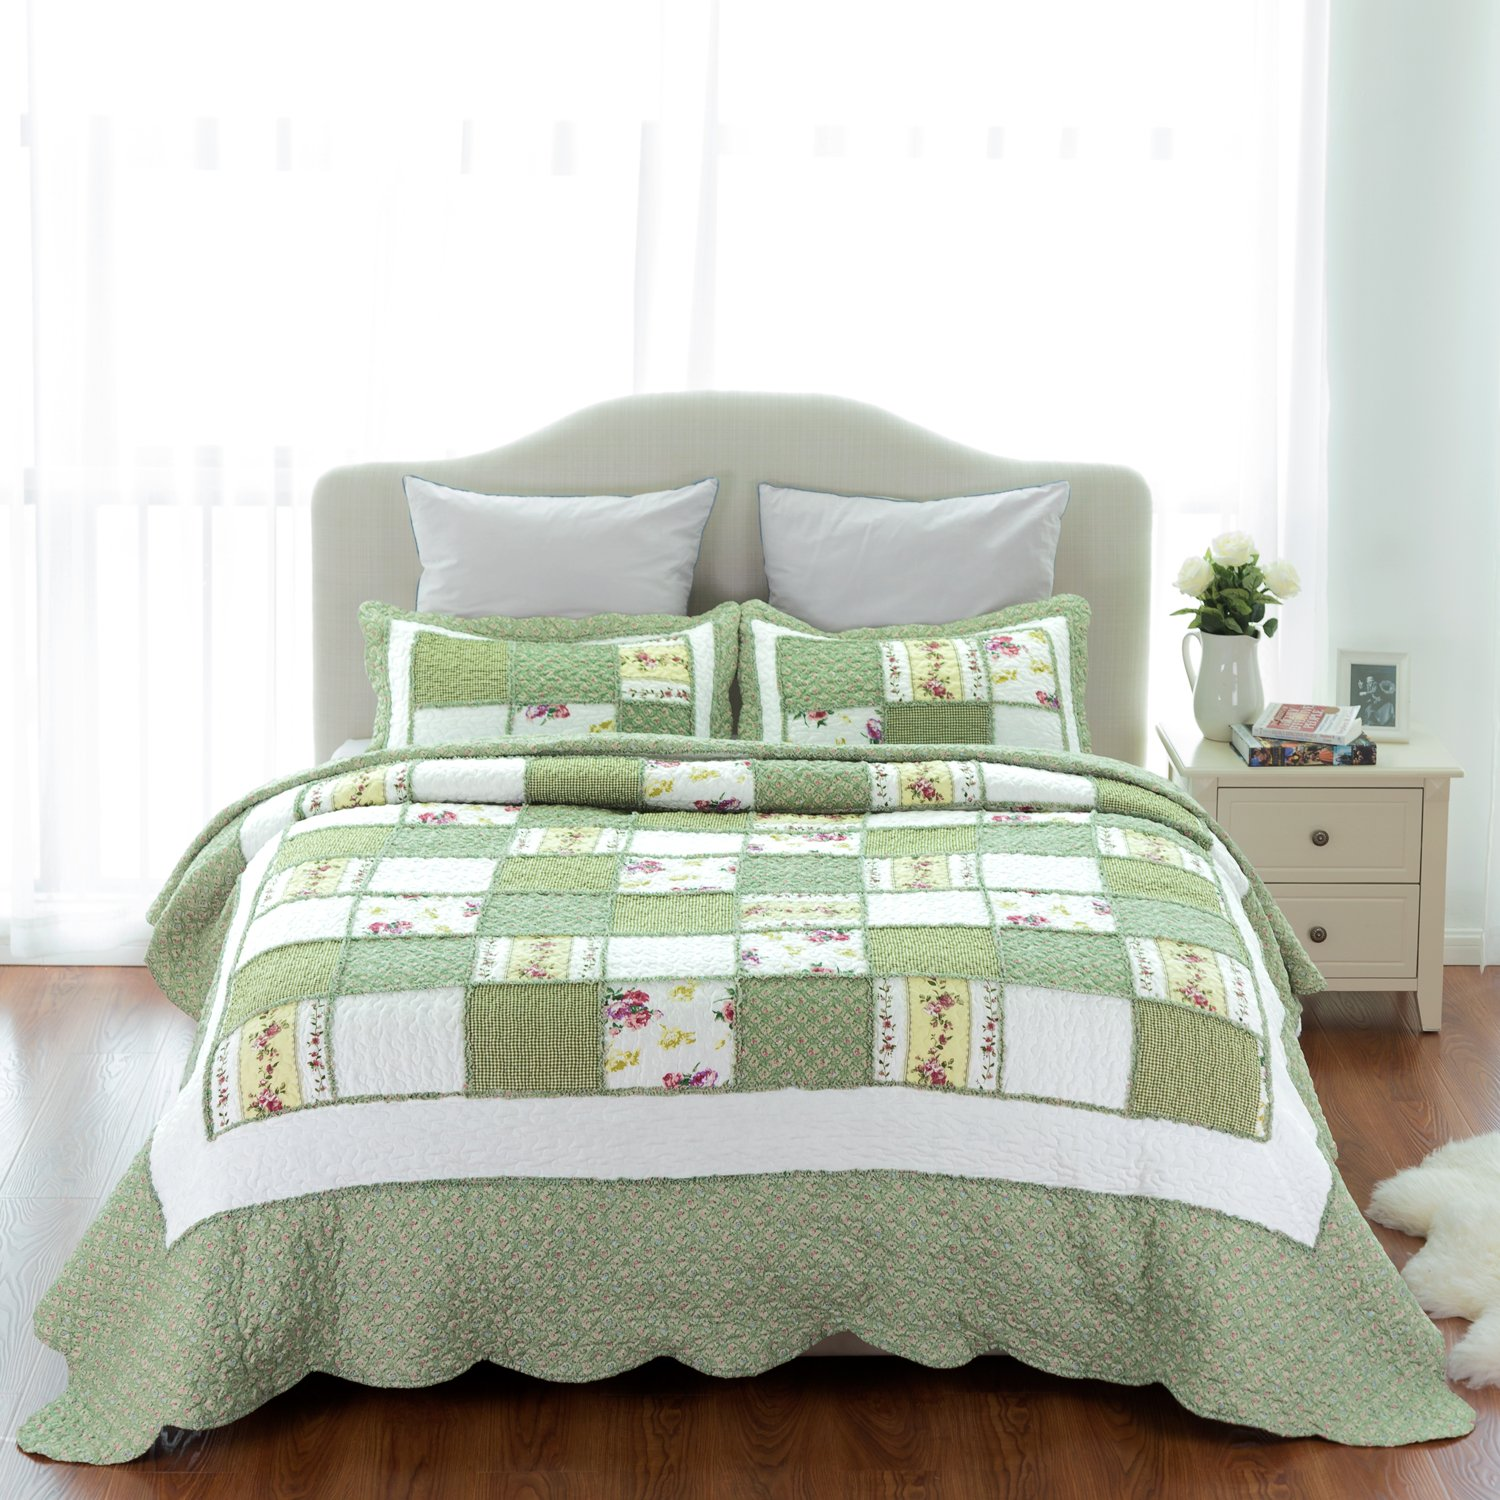 Printed Quilt Coverlet Set Bedspread King Green